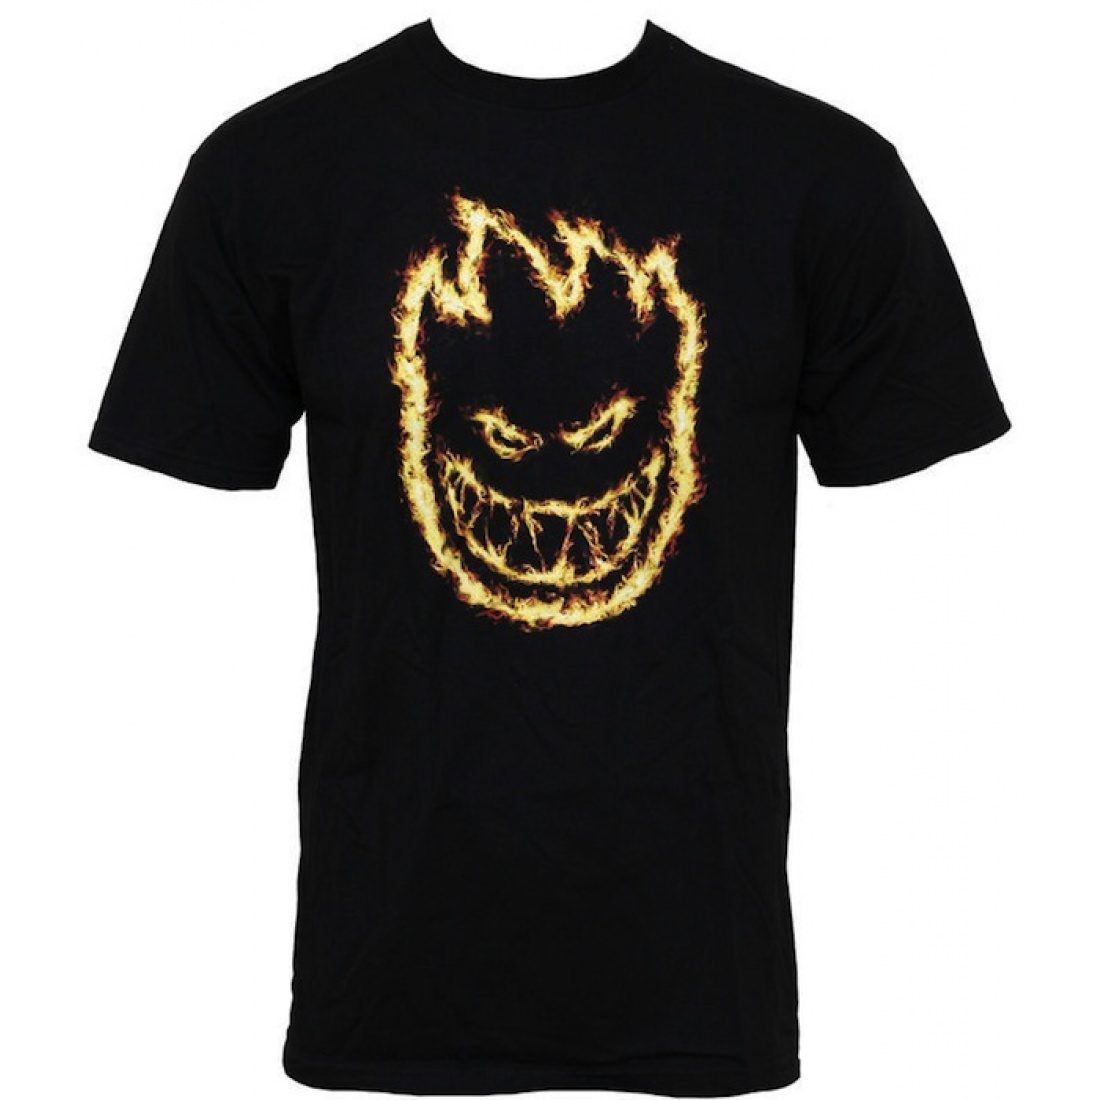 SF-Charred Remains Black Tee